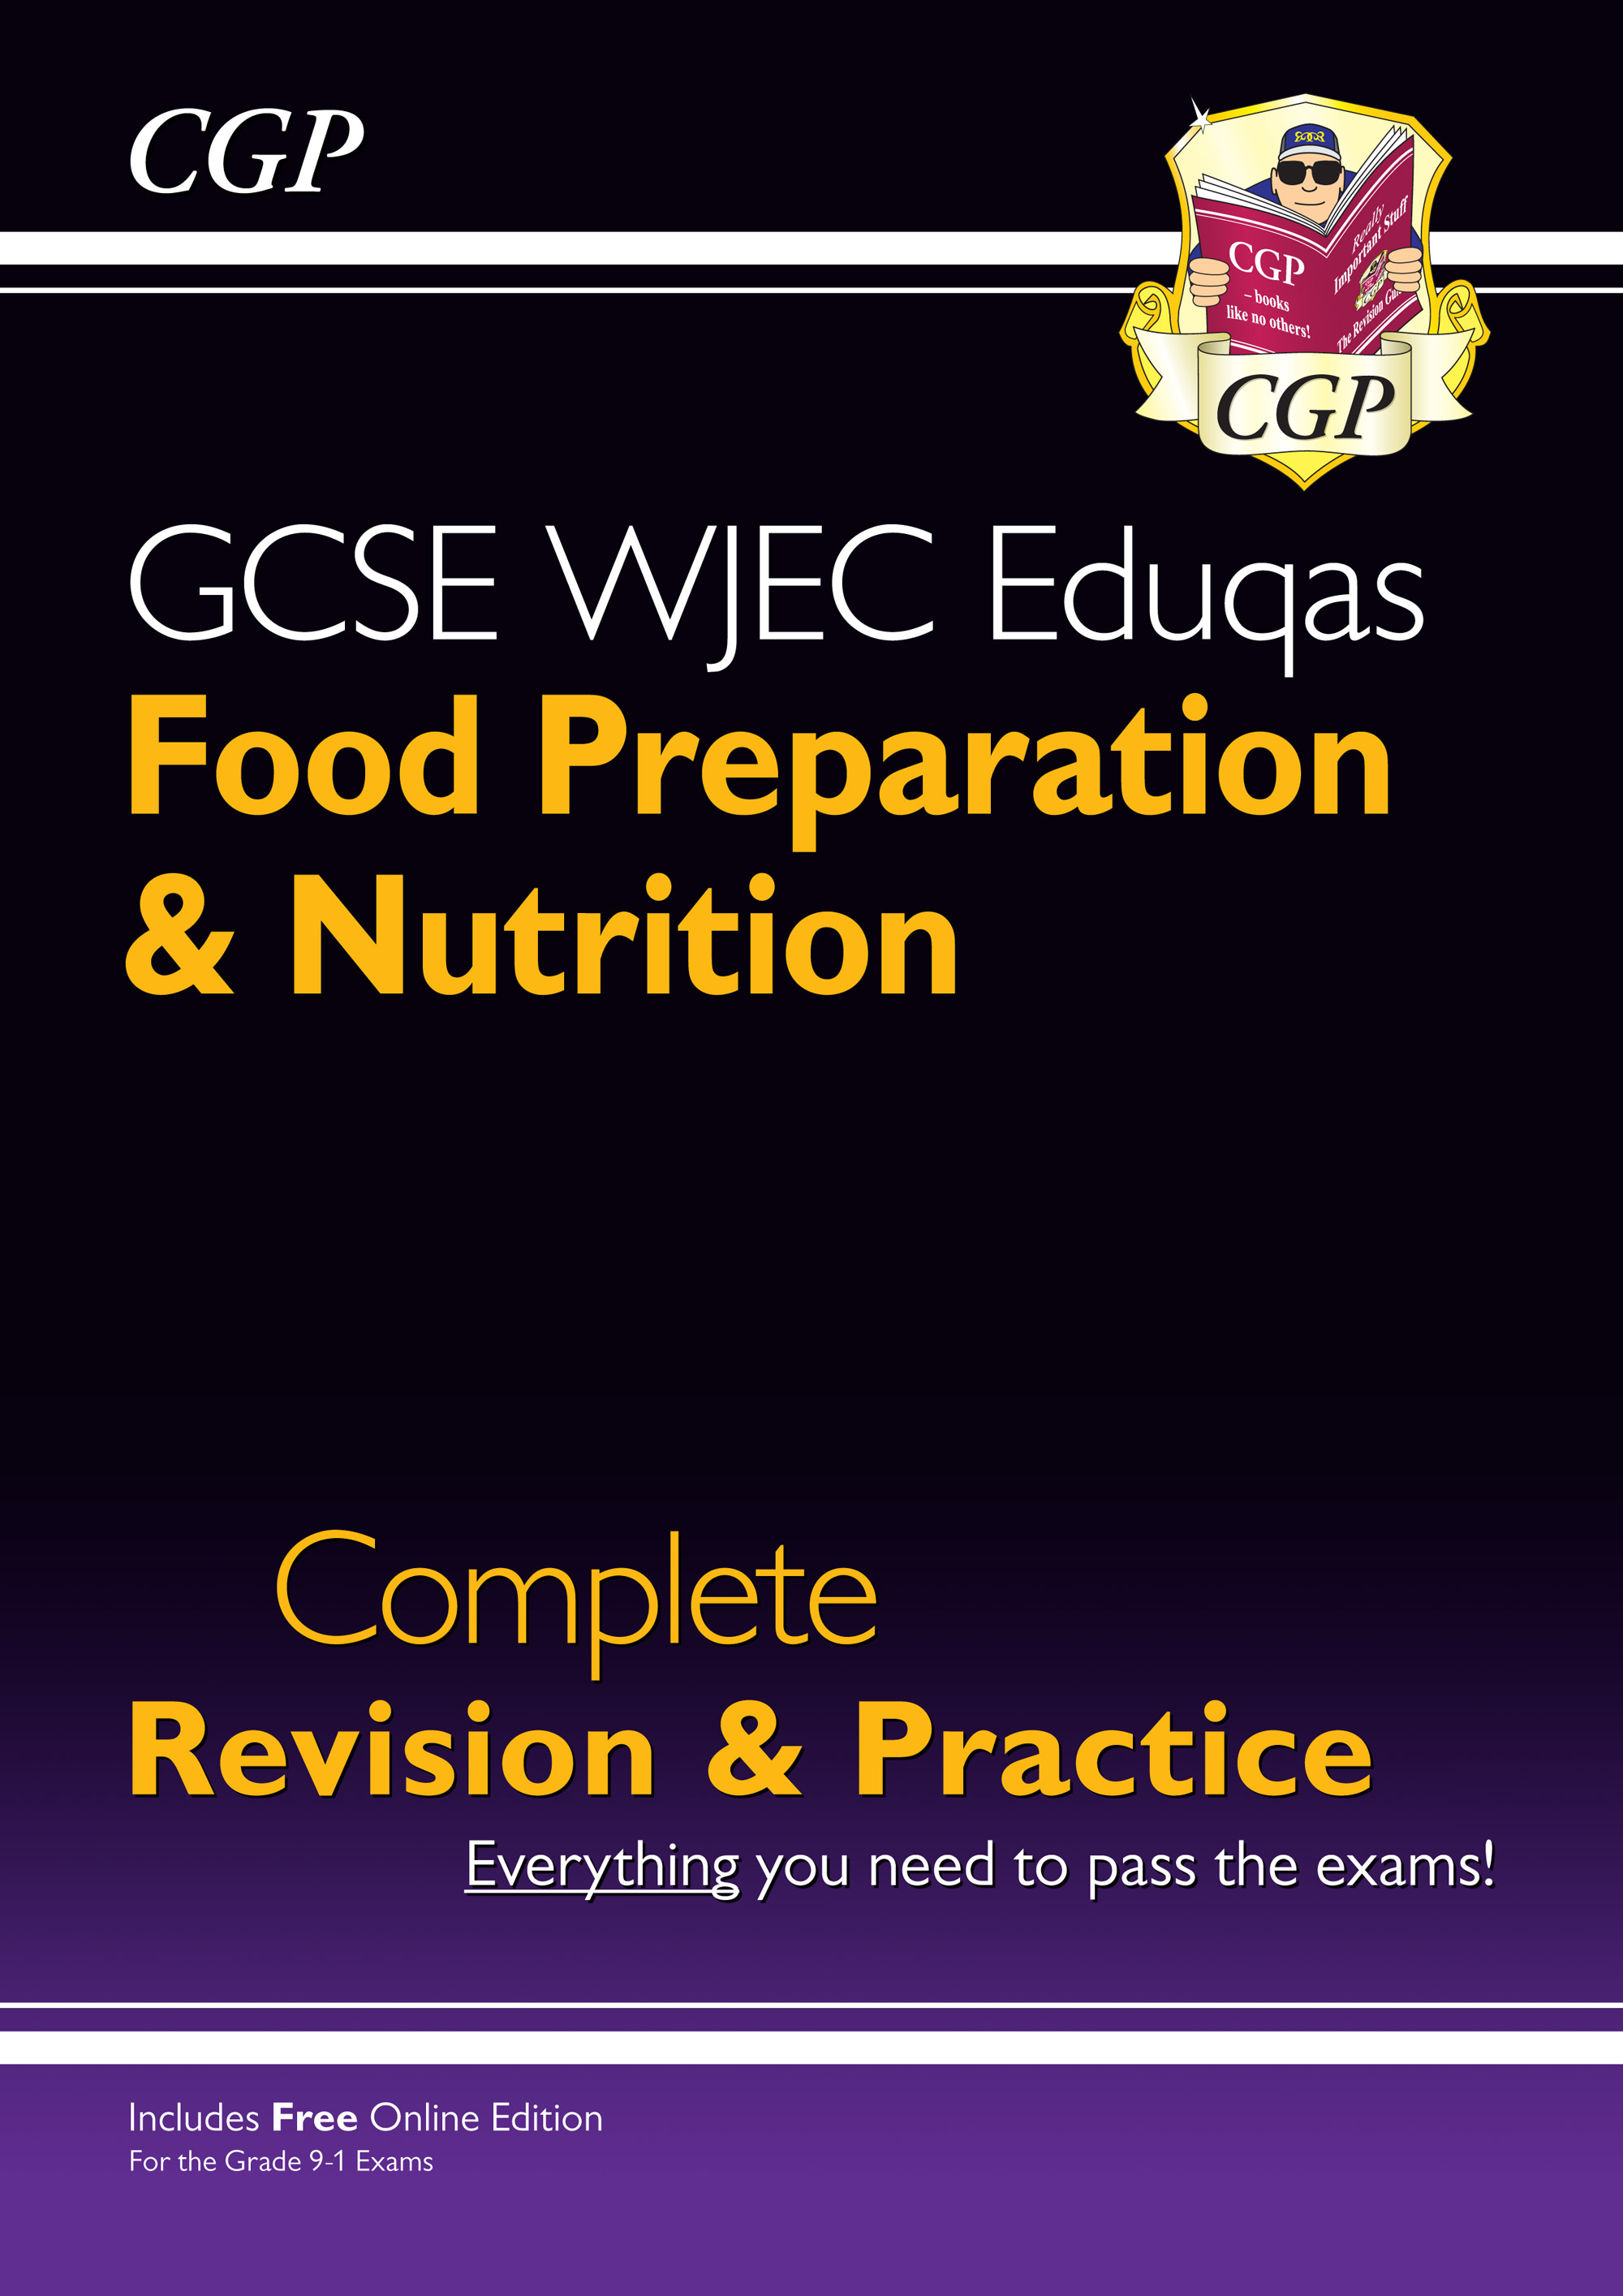 FNWS41 - 9-1 GCSE Food Preparation & Nutrition WJEC Eduqas Complete Revision & Practice (with Online